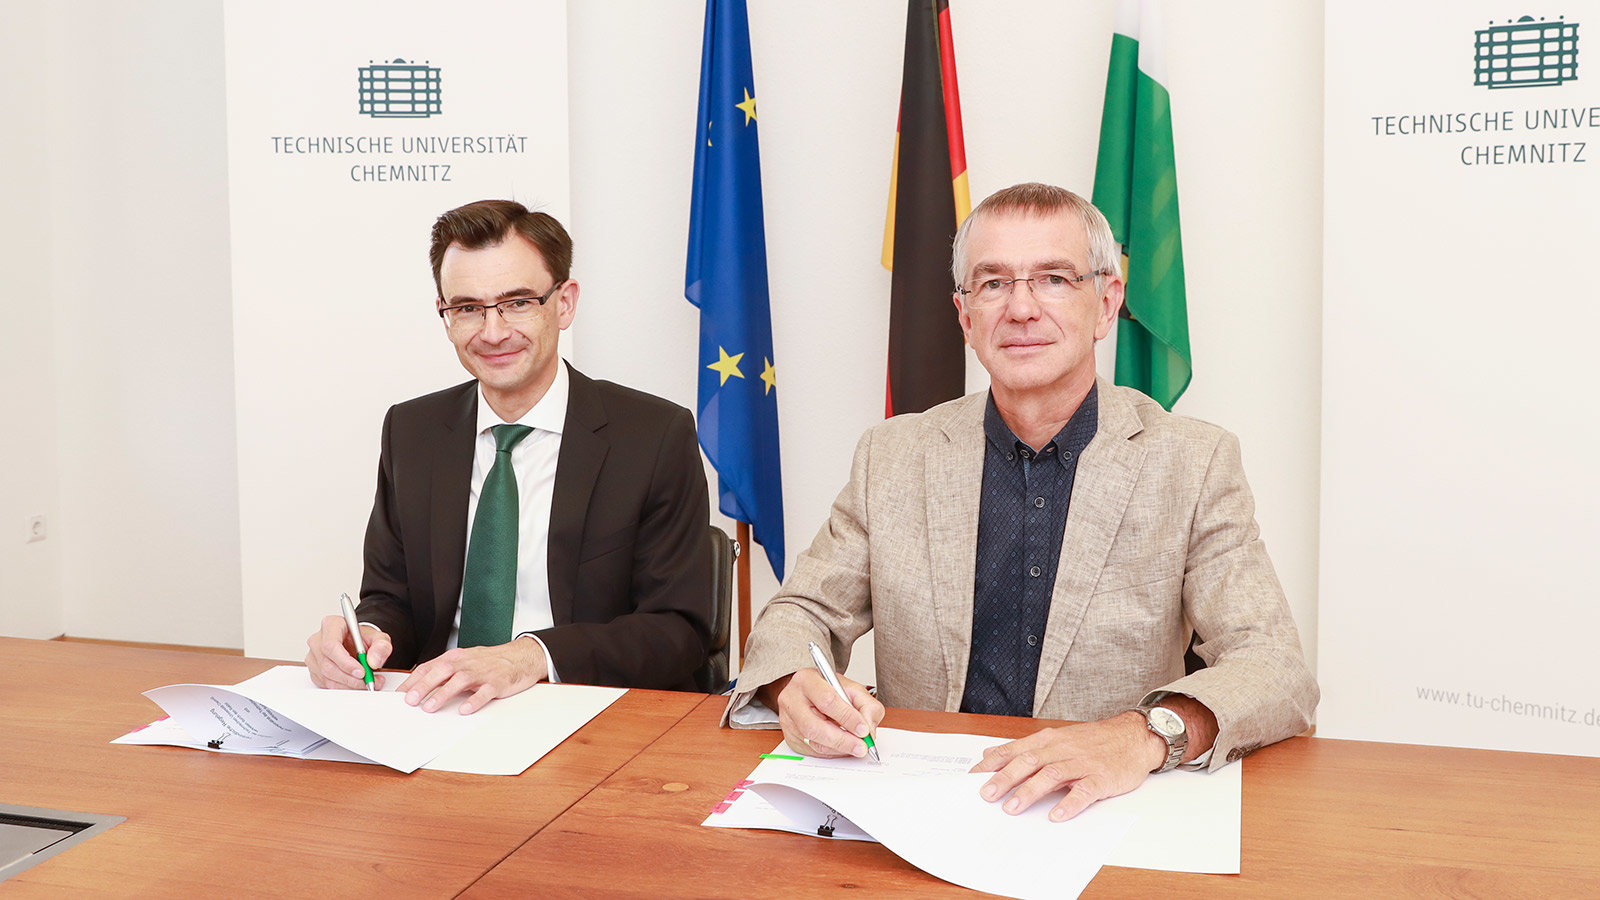 Prof. Dr. Gerd Strohmeier and Dr. Thomas Raschke sitting at a table and signing papers.